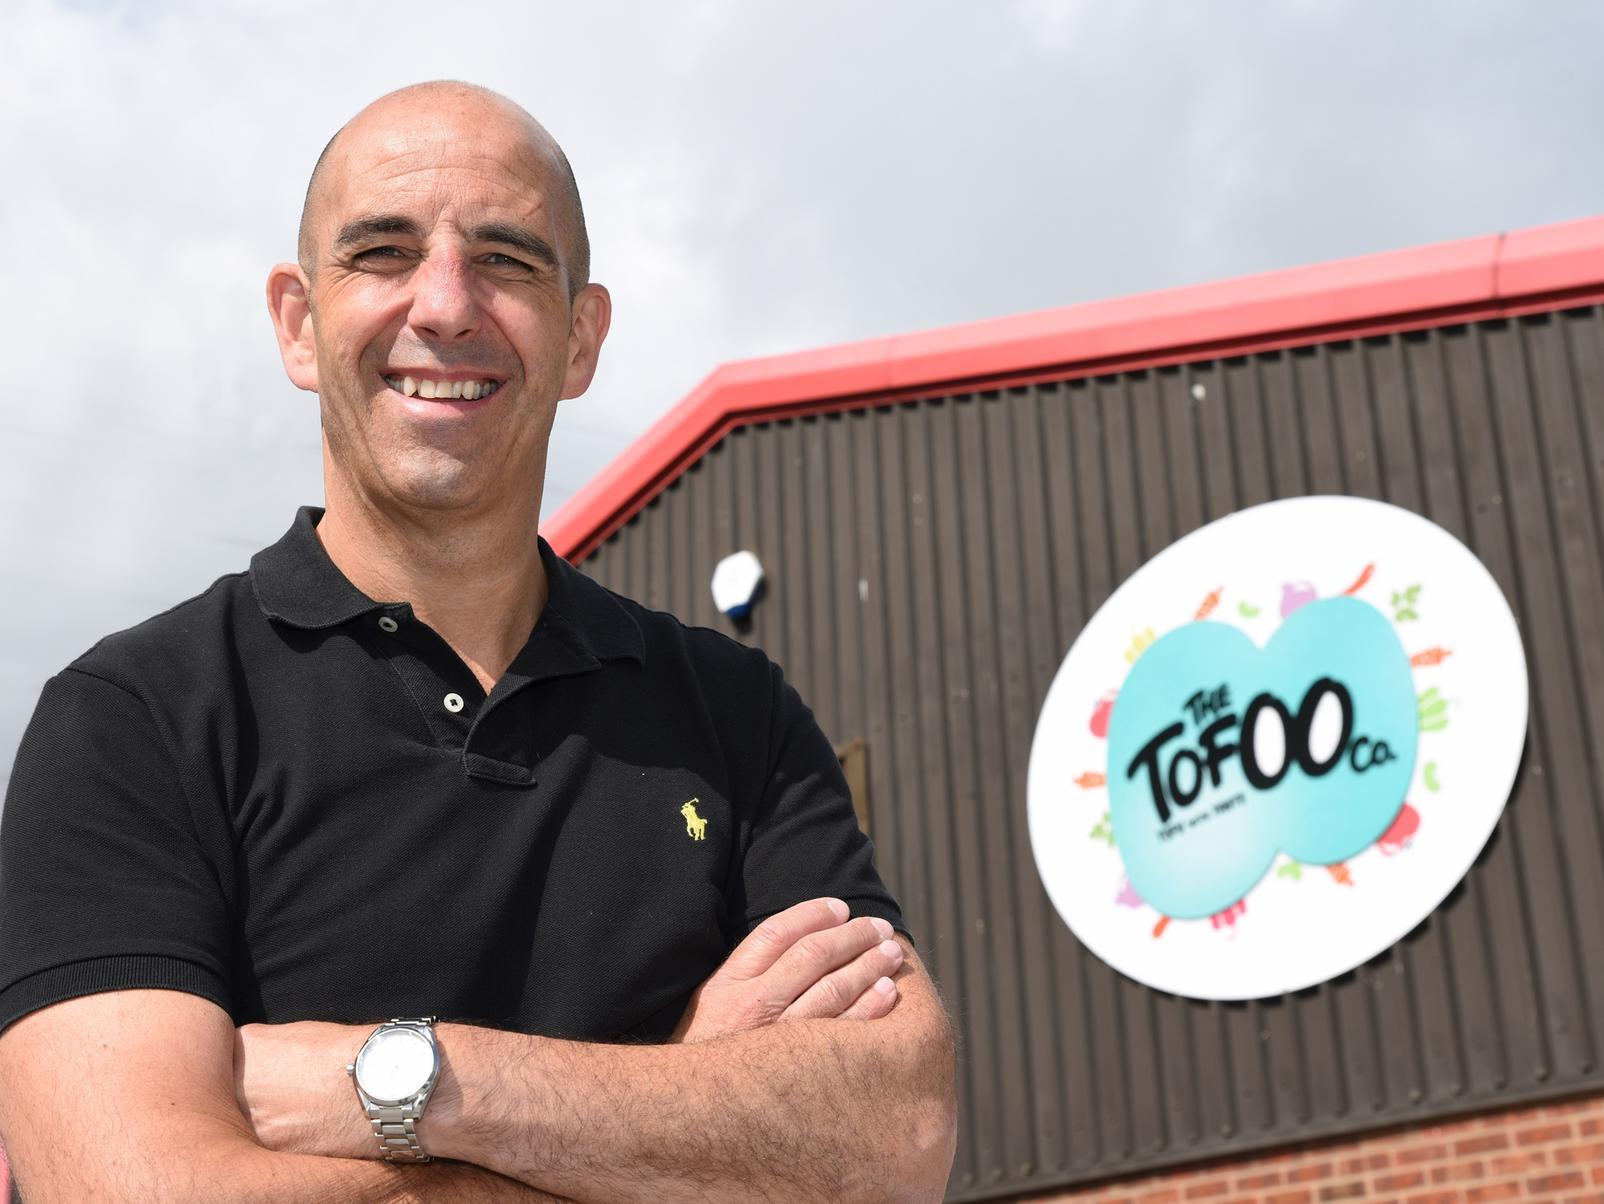 Meat free food manufacturer Tofoo is set to hire more staff as demand soars